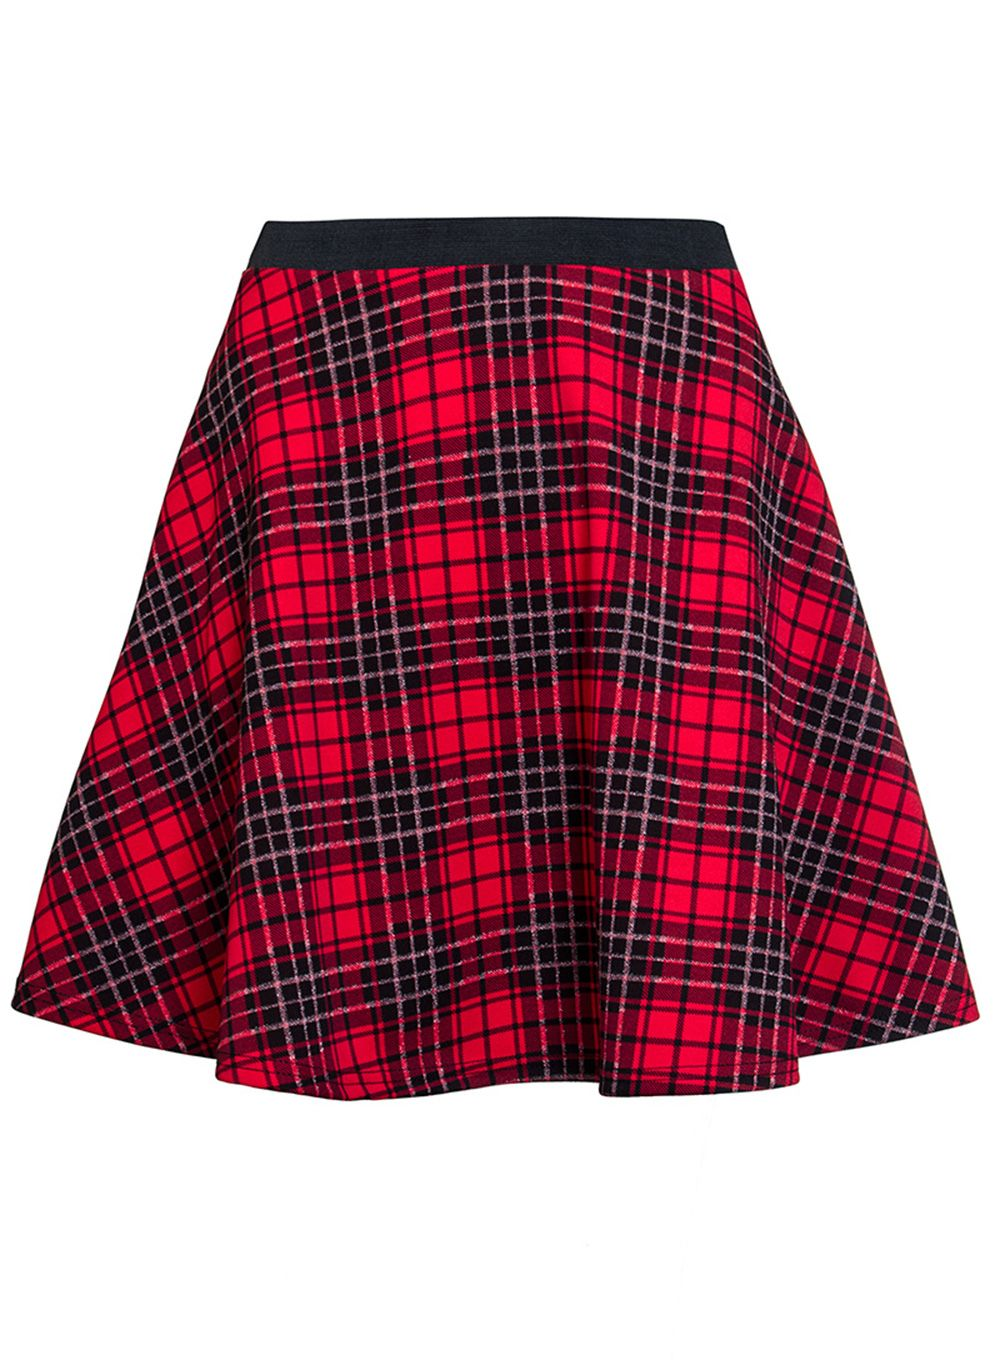 Quiz Quiz Red And Black Check Skirt, Red